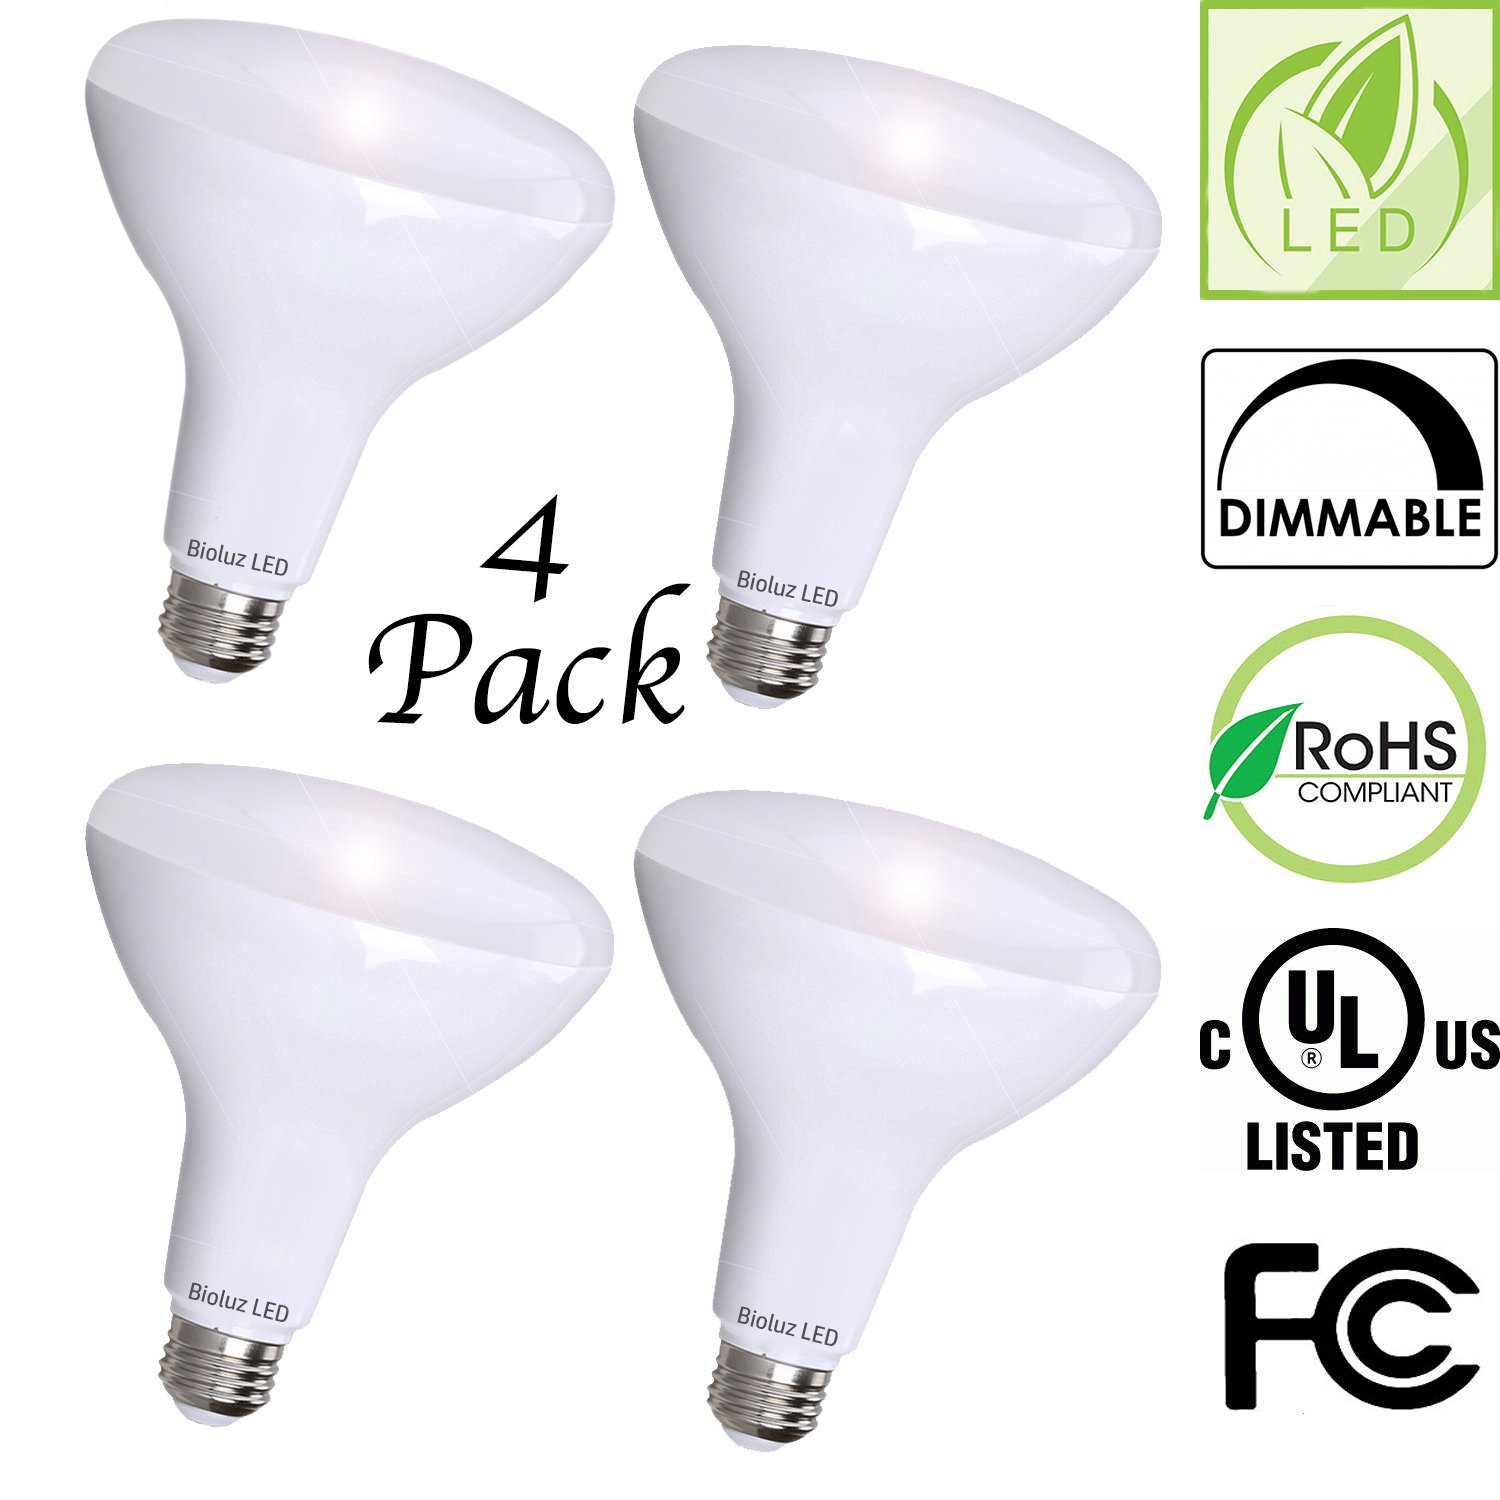 4 Pack Brightest BR40 LED Bulbs by Bioluz LED – INSTANT ON Warm LED Energy Saving Bulbs, 17w (120w Replacement) 2700k Bulb 1400 Lumen, Indoor/Outdoor Smooth Dimmable Lamp UL Listed by Bioluz LED